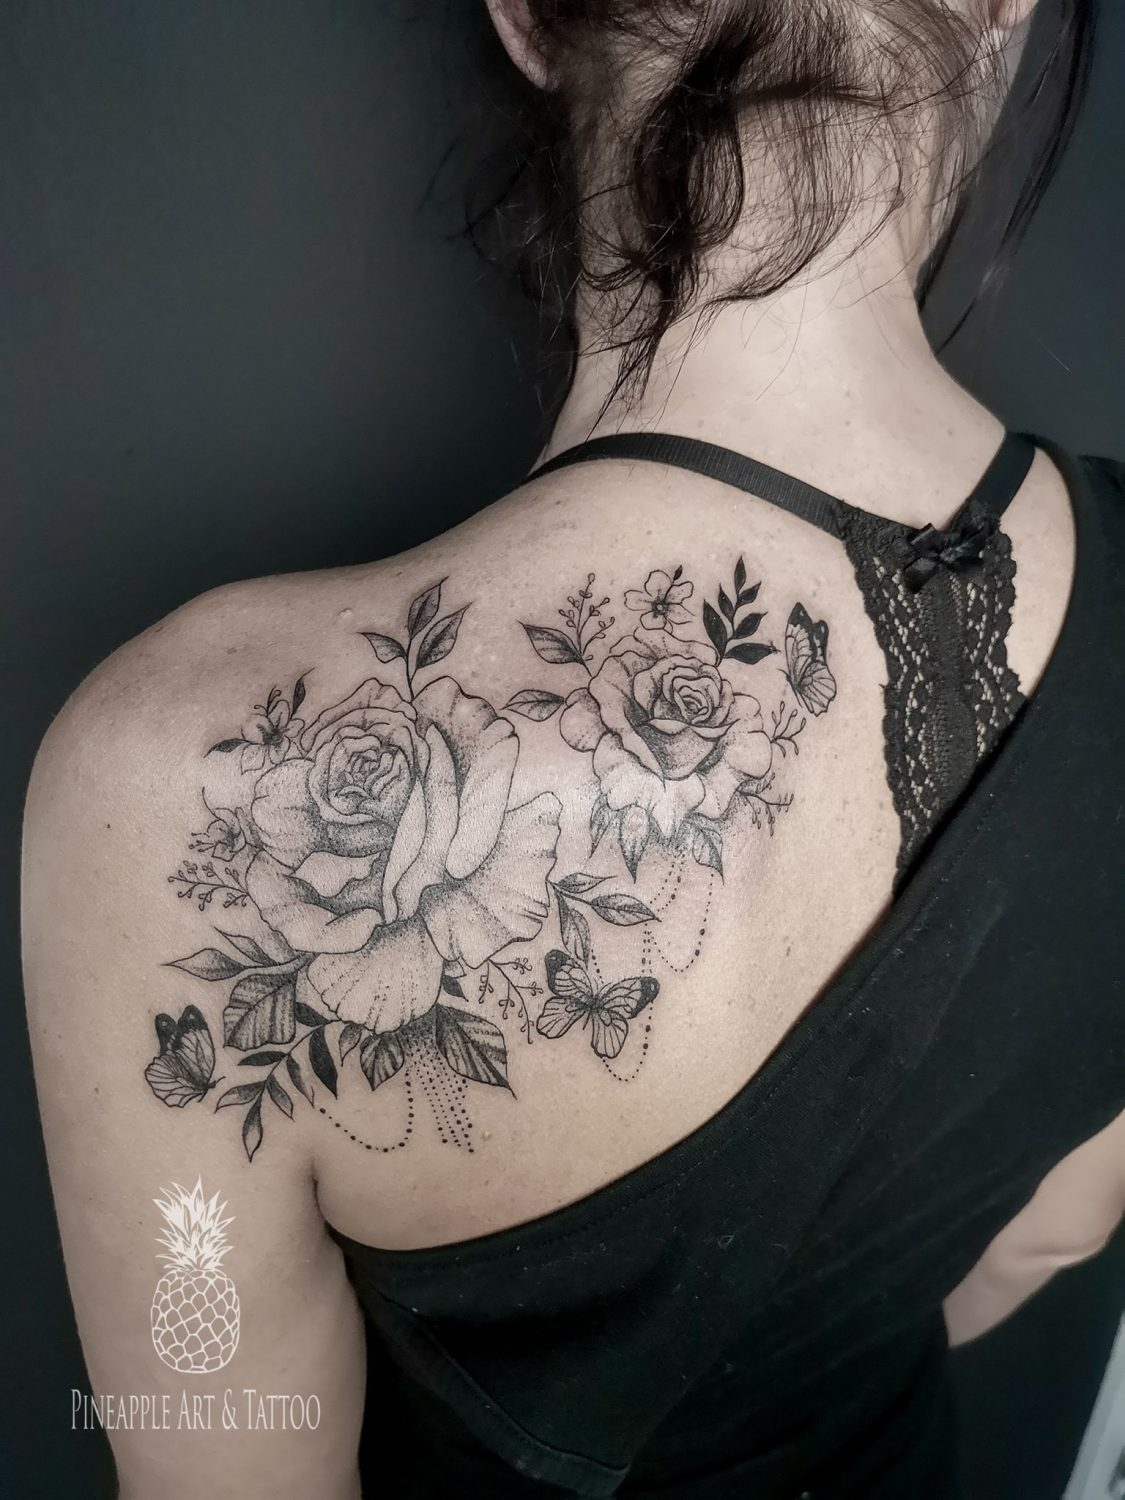 Dotted flowers tattoo